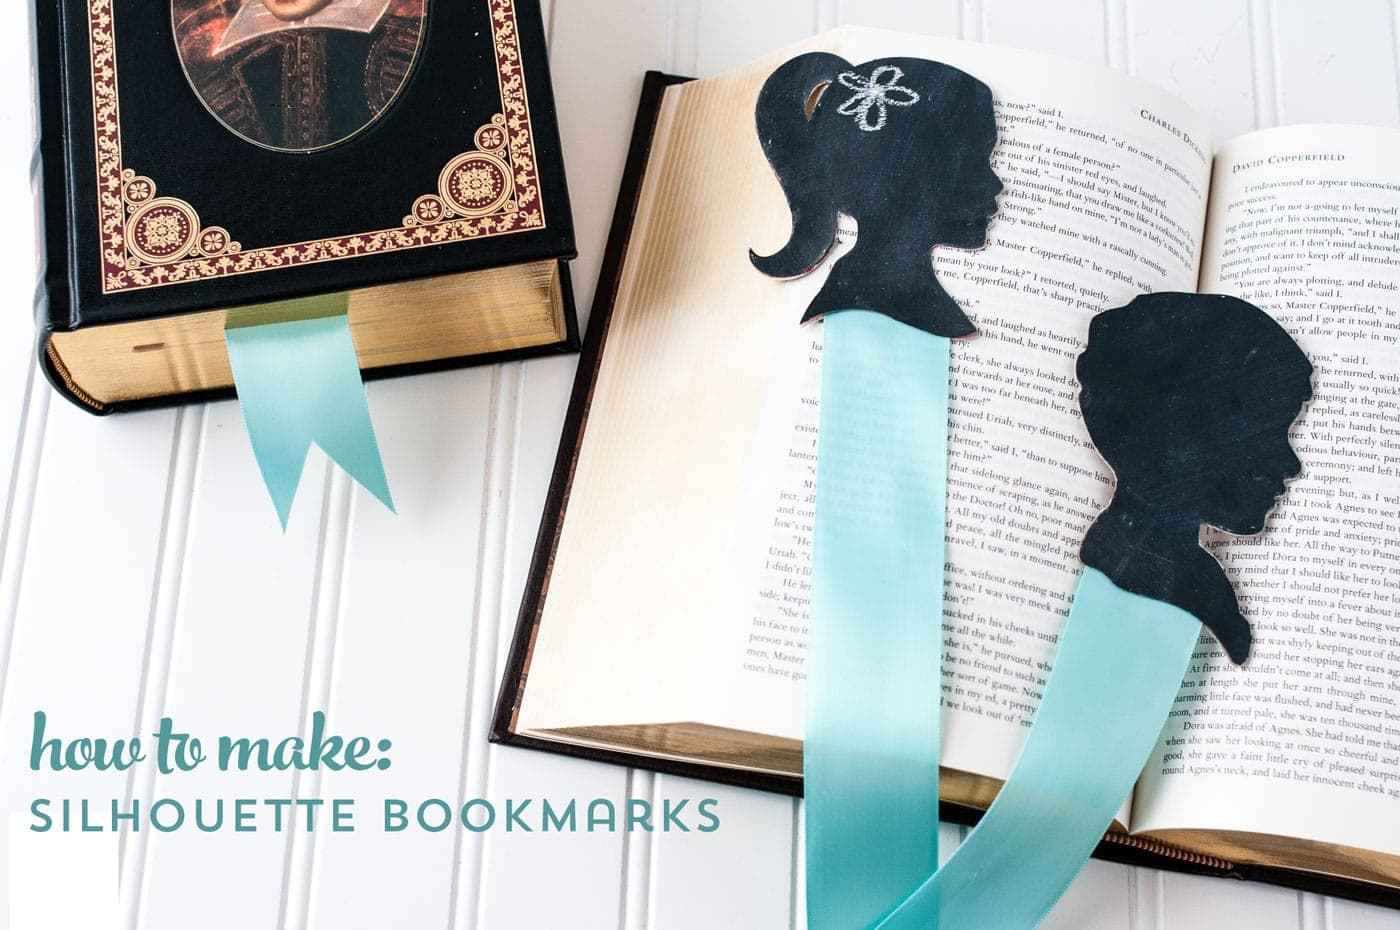 DIY Chalkboard Silhouette Bookmarks; a fun DIY Mother's Day Gift Idea